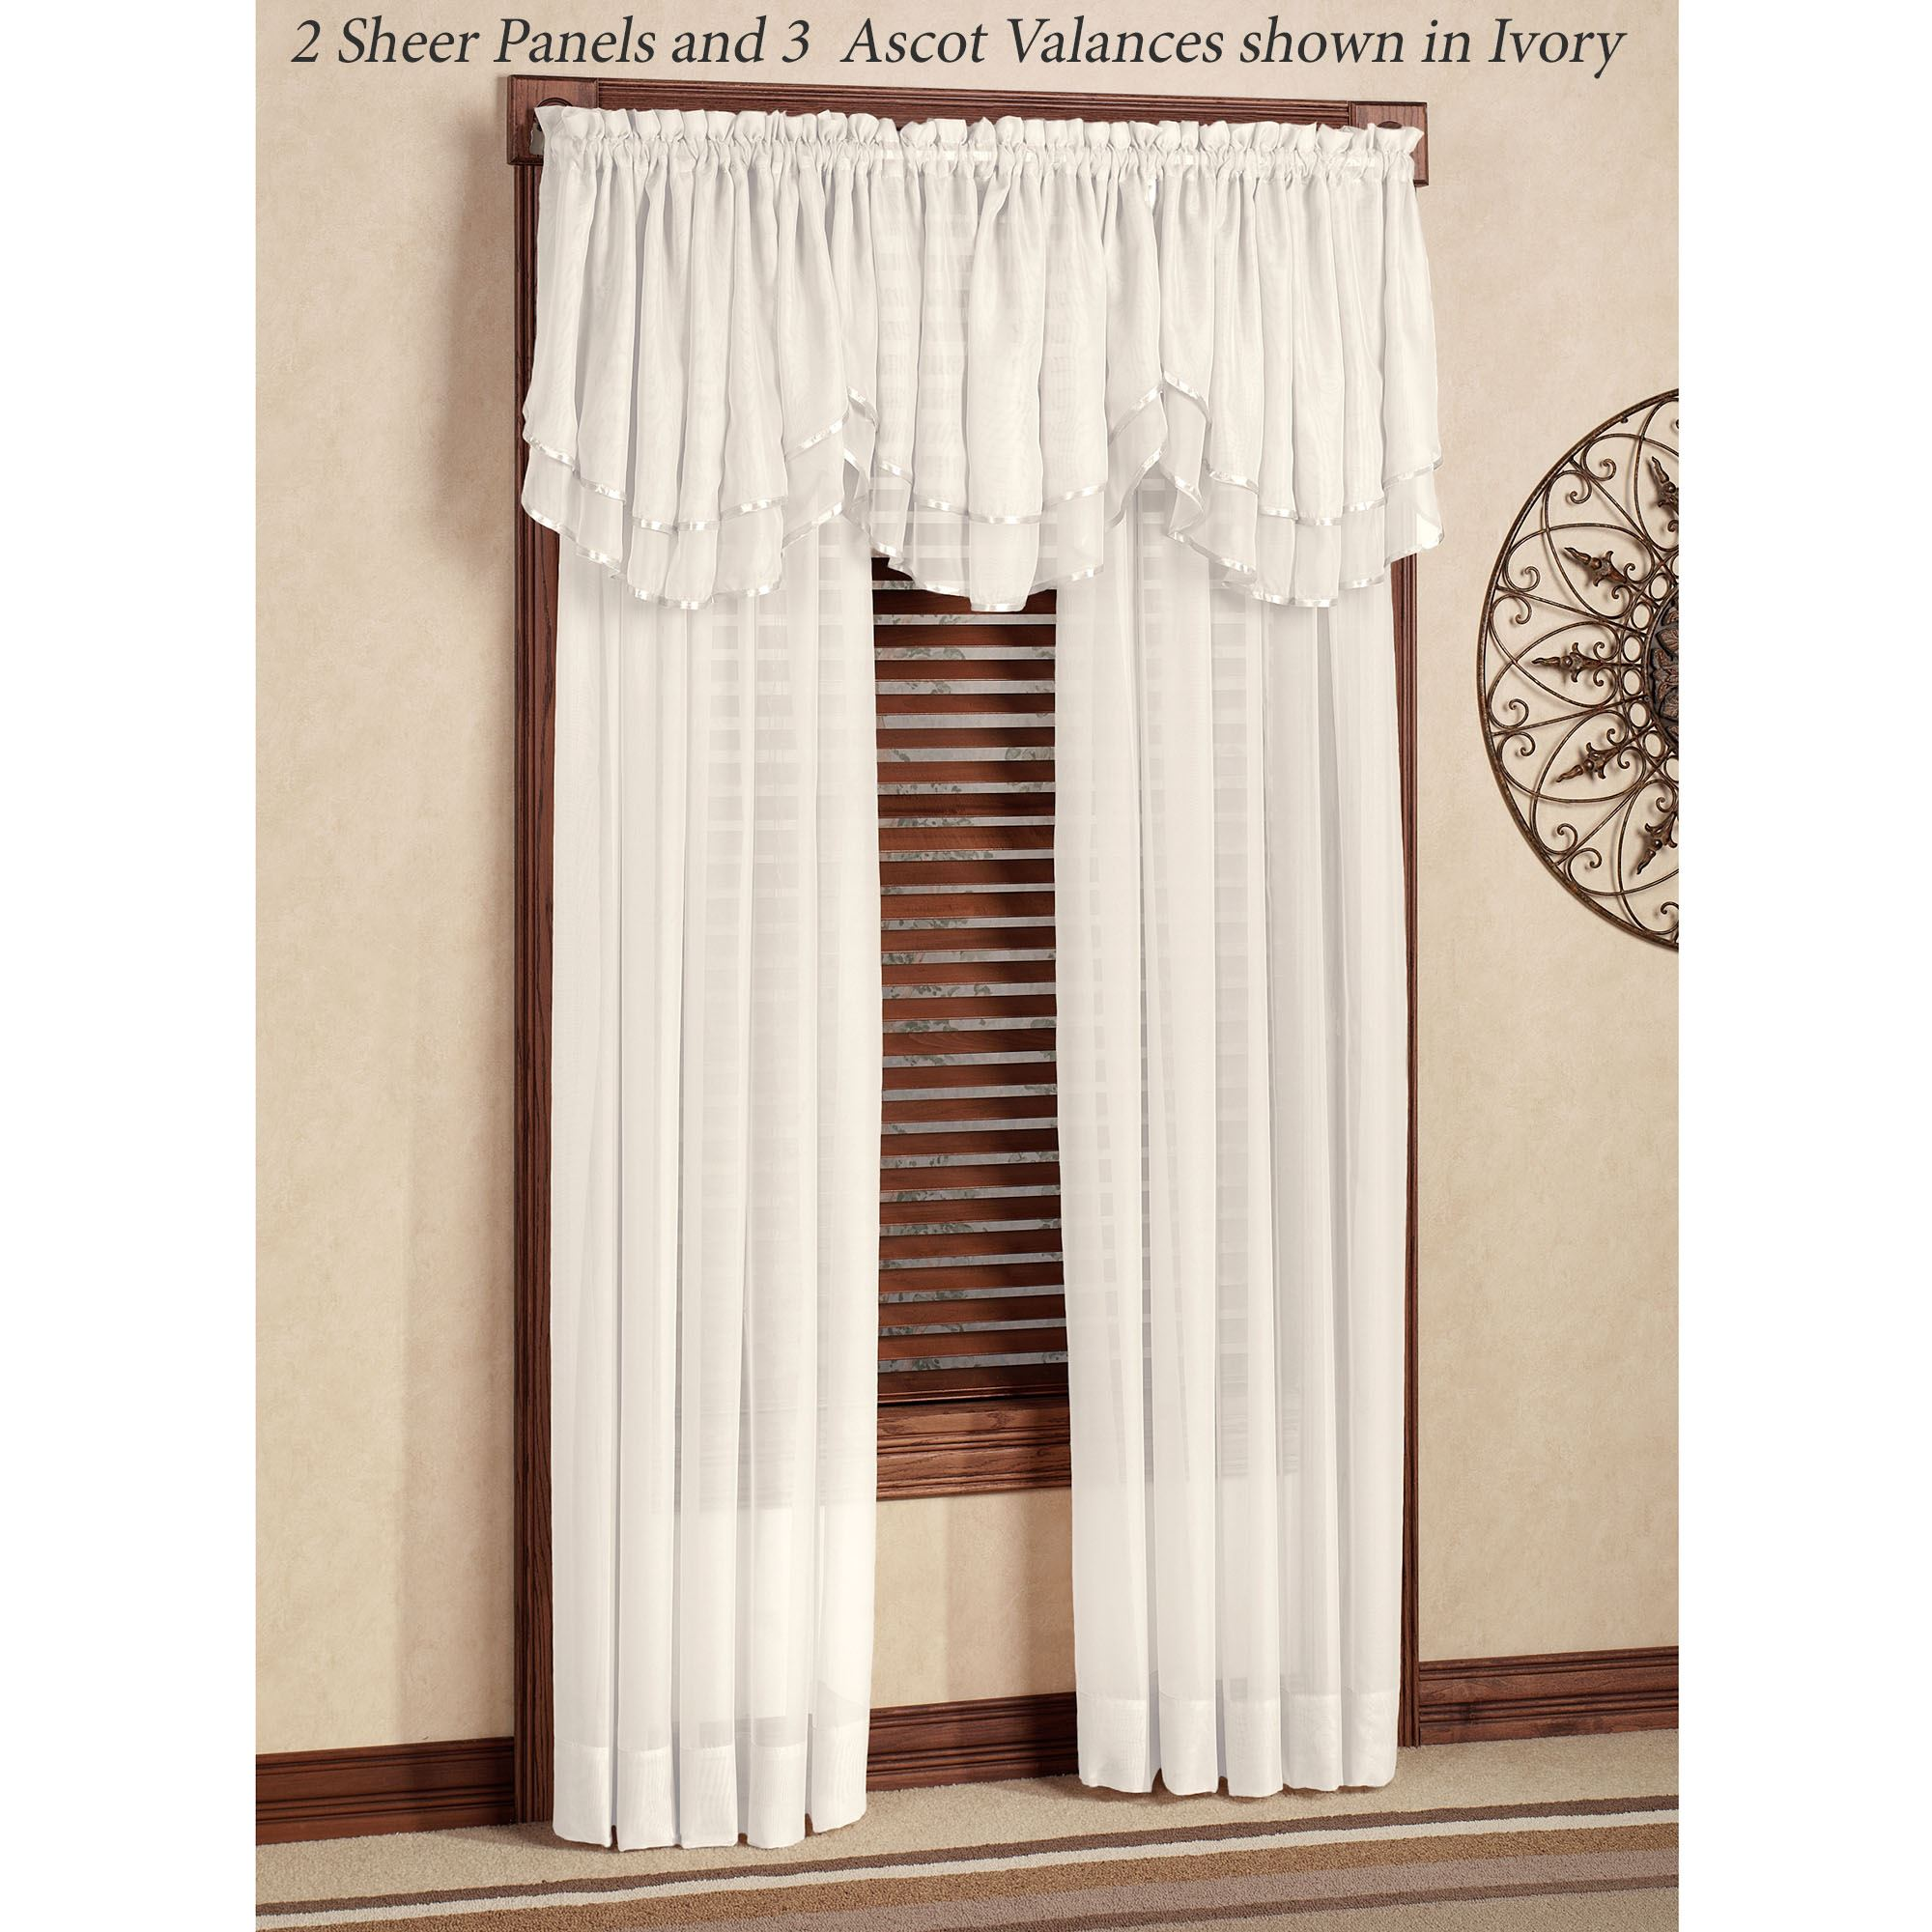 free garden with reilly ascot crystal valance window overstock queens product home five tassel fringe court today shipping